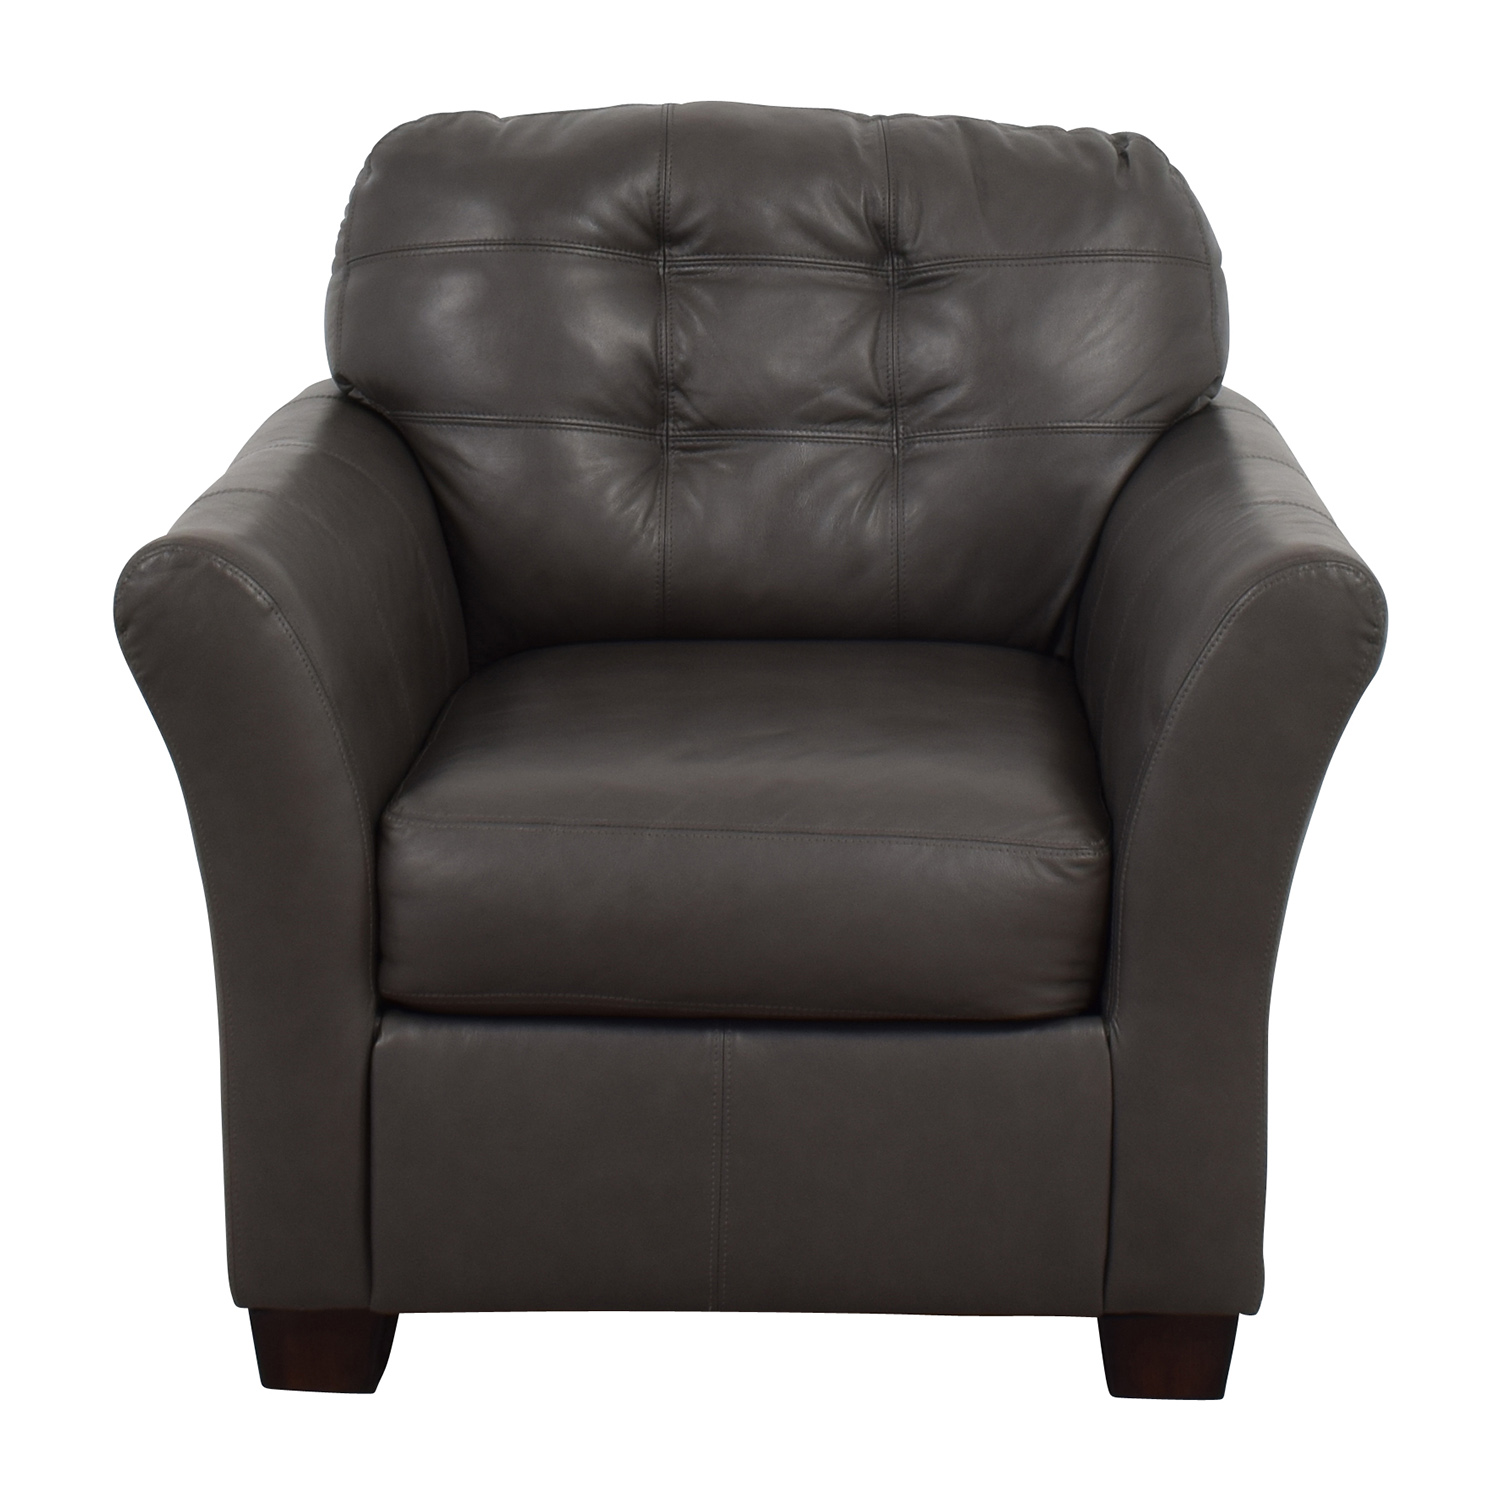 Ashley Furniture Gray Leather Chair Ashley Furniture